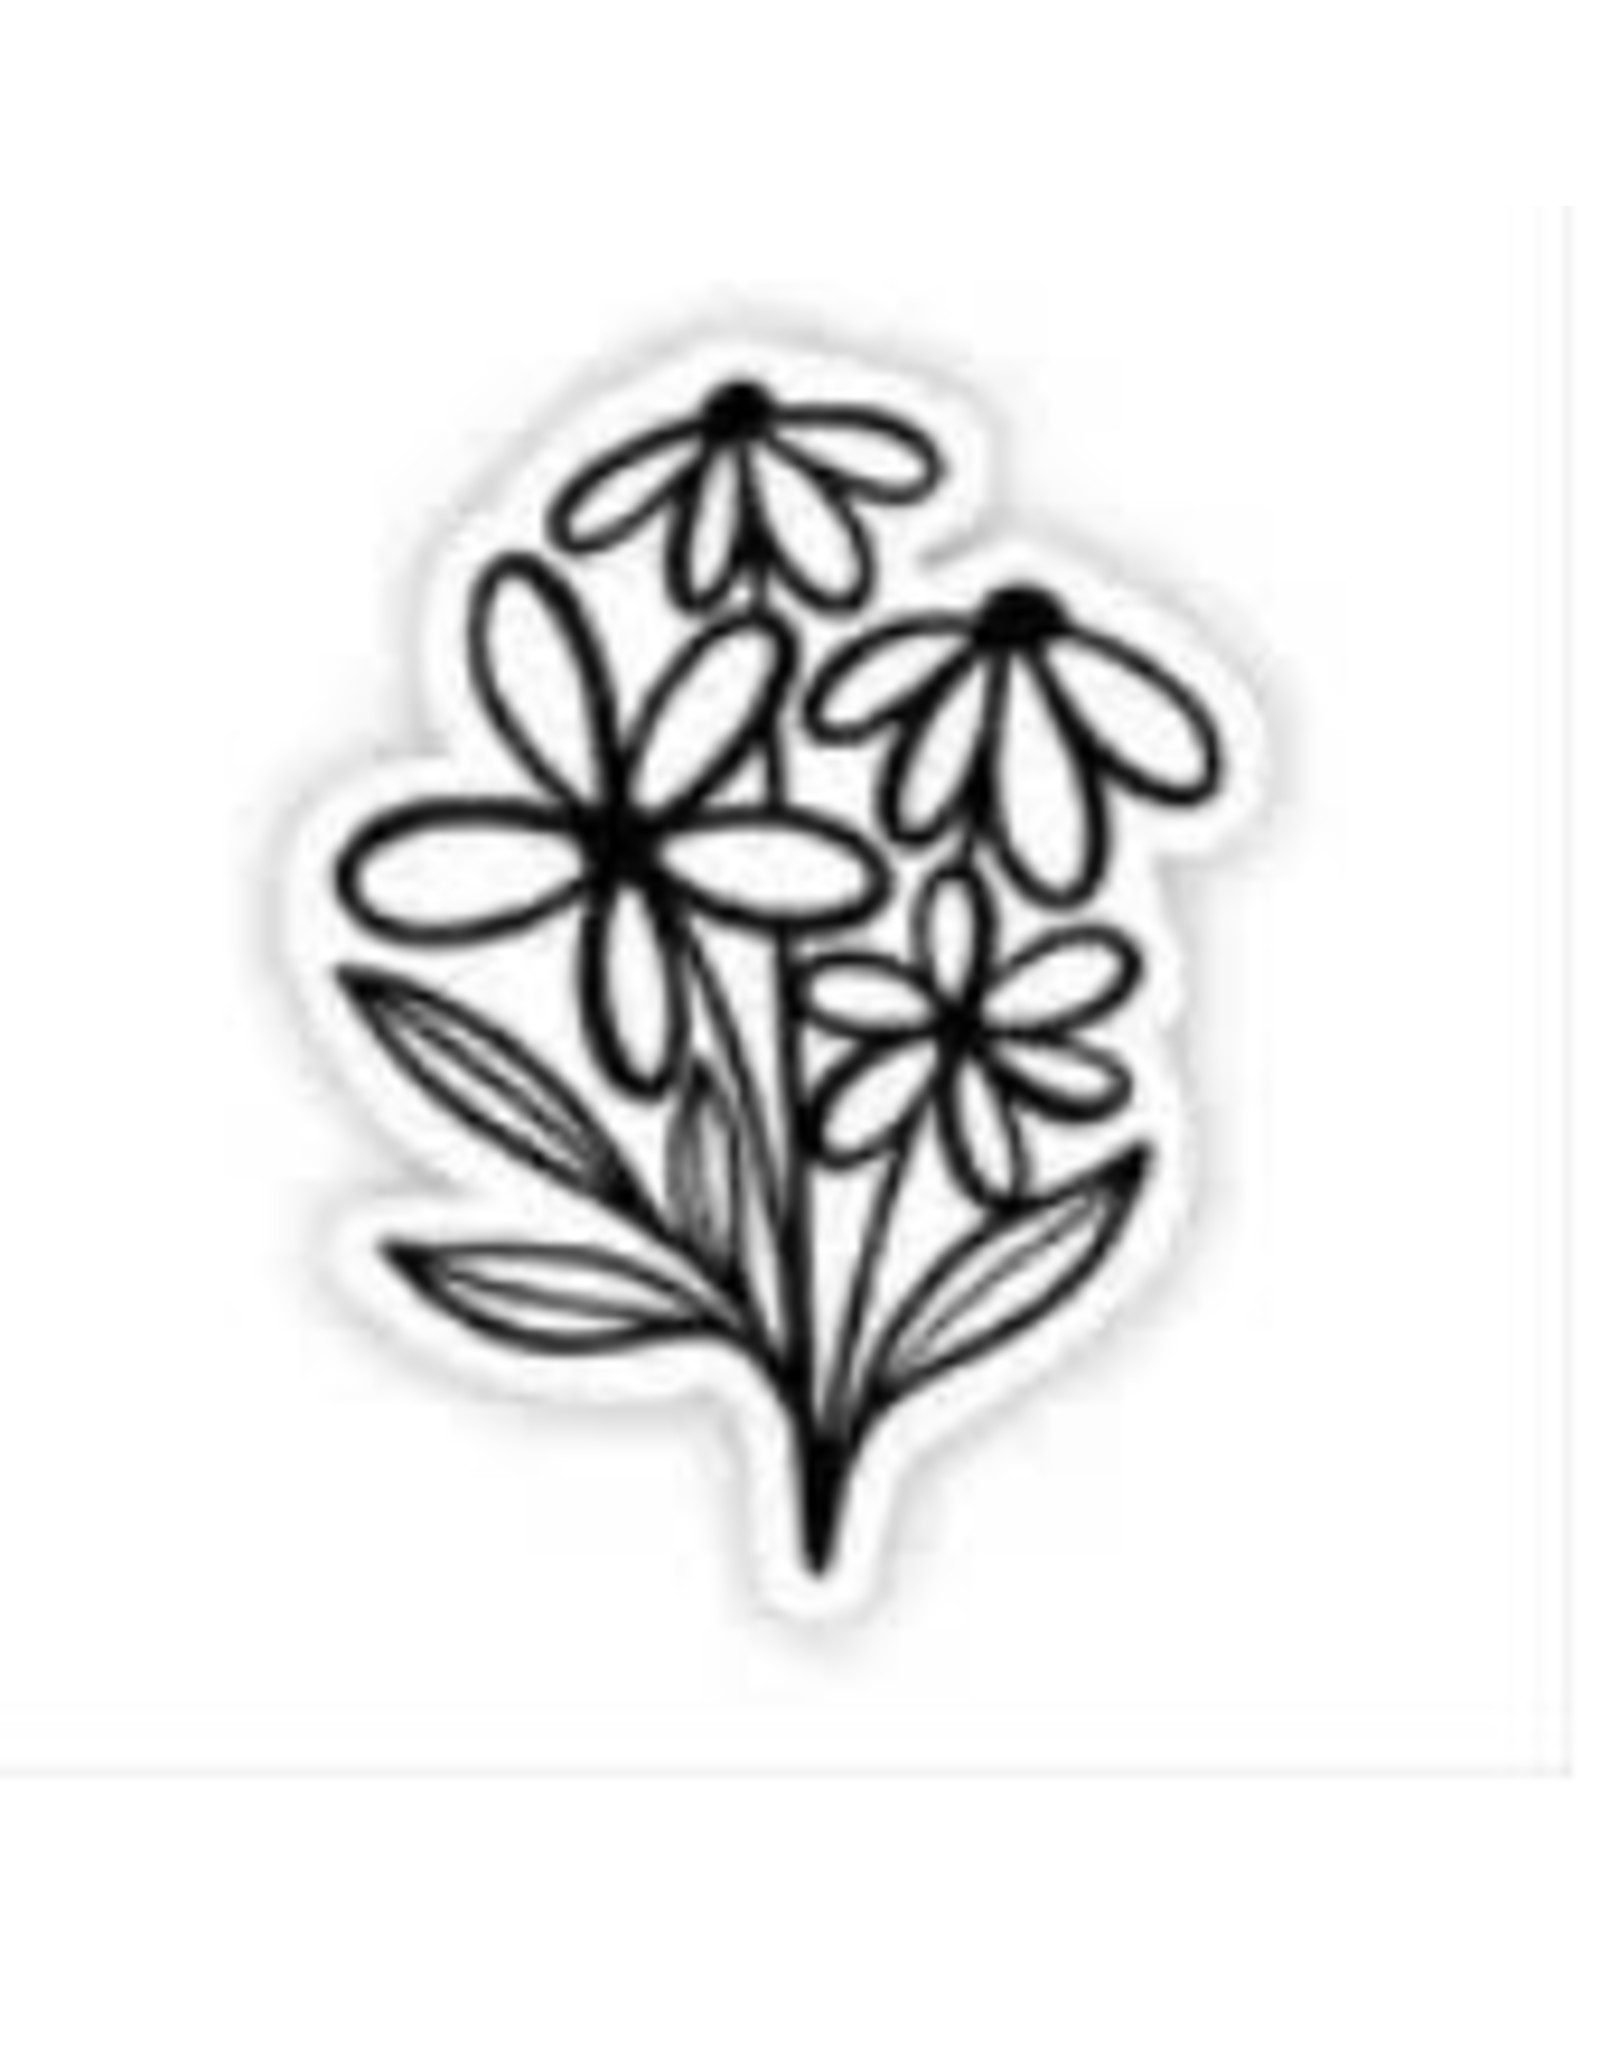 BIG MOODS FOUR BLACK AND WHITE FLOWERS STICKER